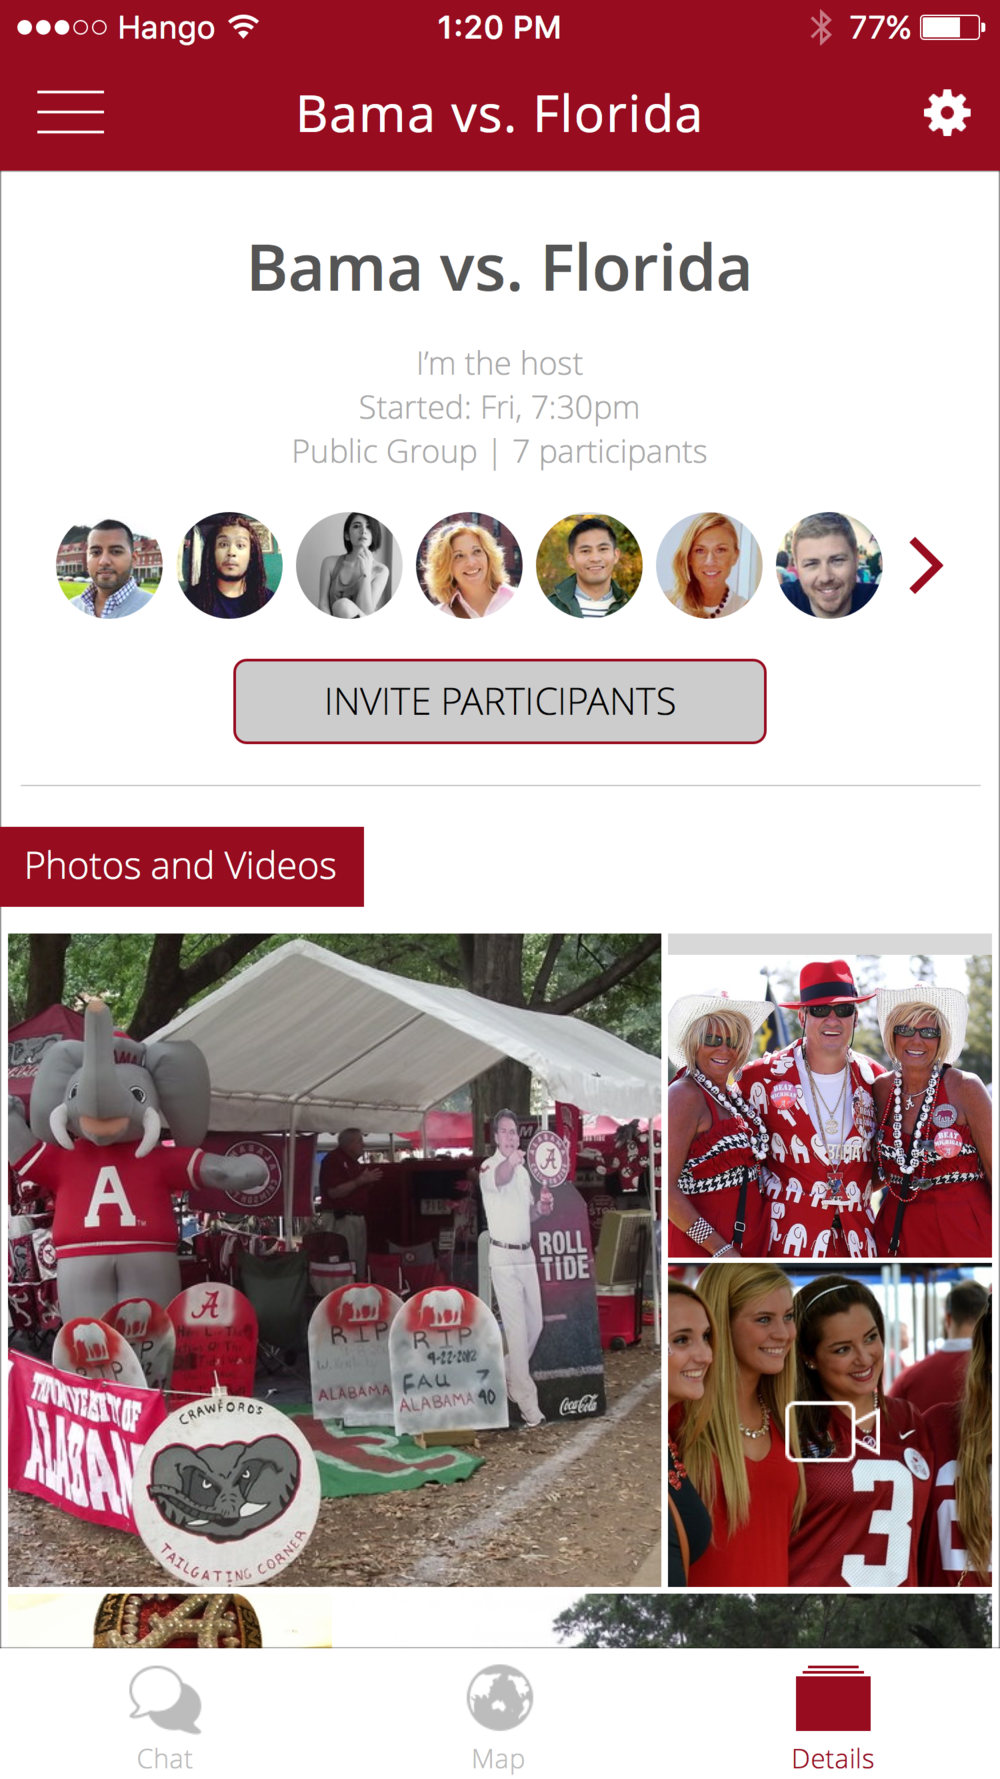 Hango Details   Invite friends at any time and see a collage of photos and videos from each event.